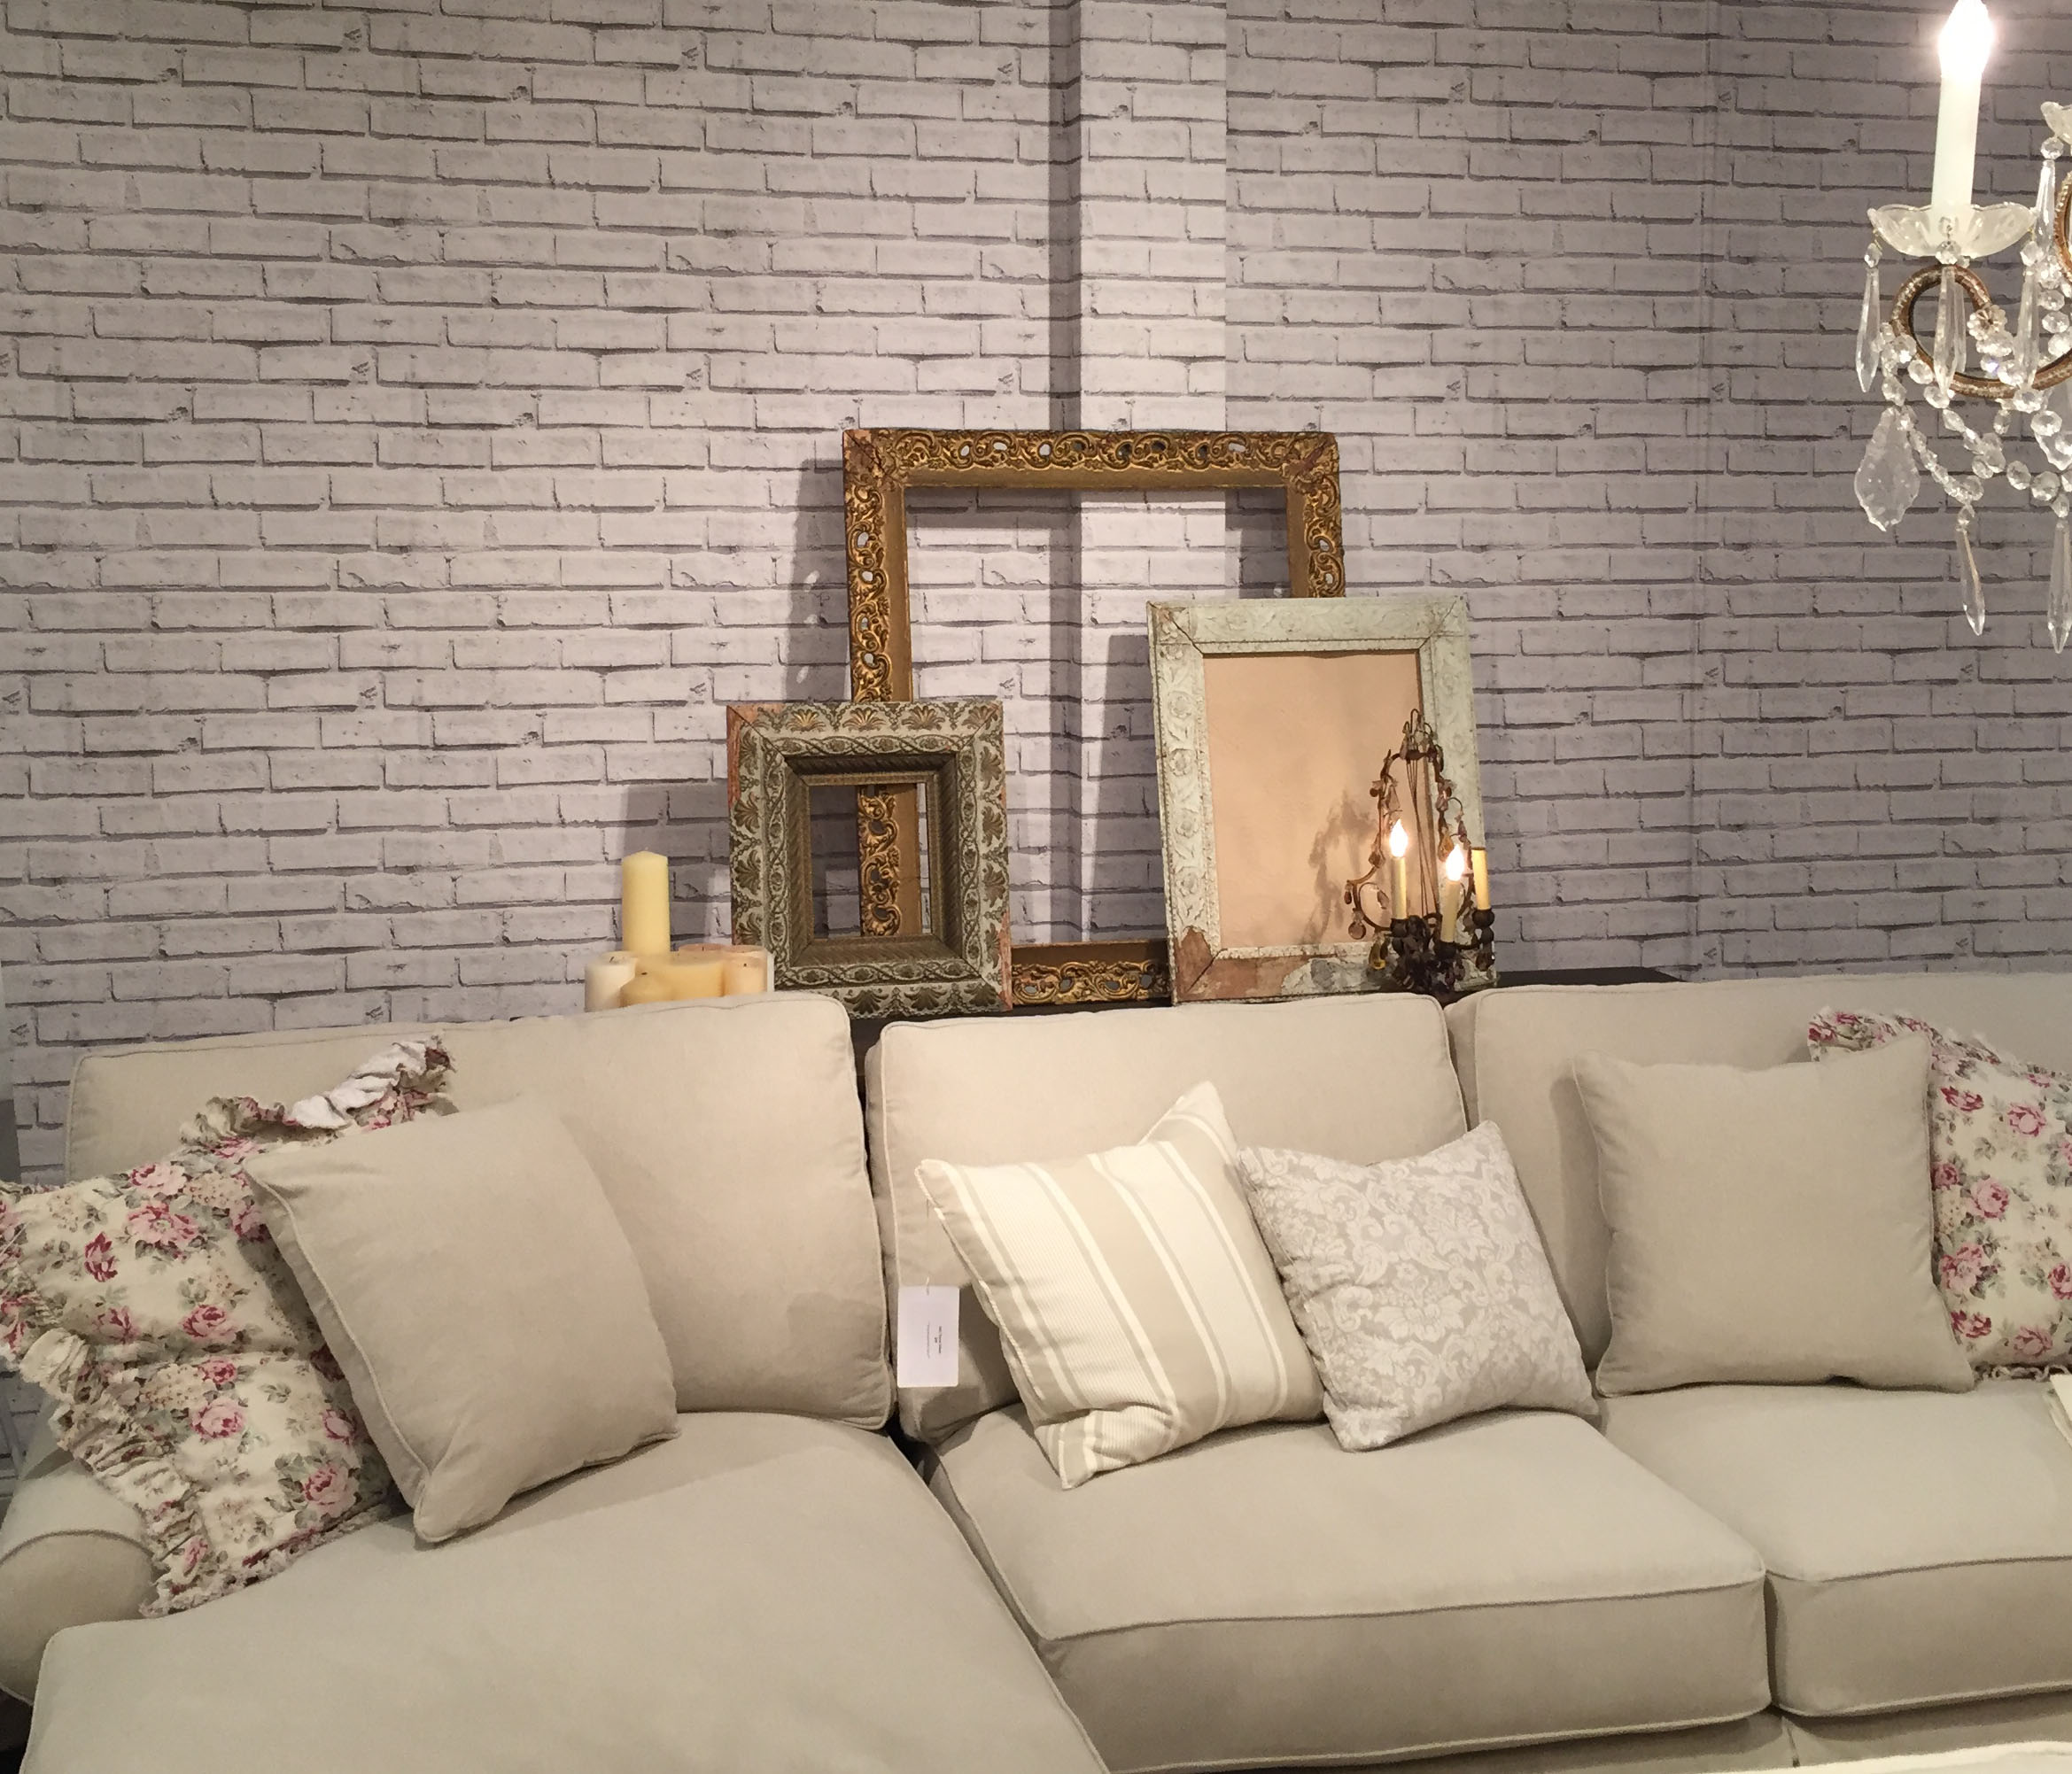 Living Room Furniture High Point Nc high point, nc furniture market - interior design lincoln and